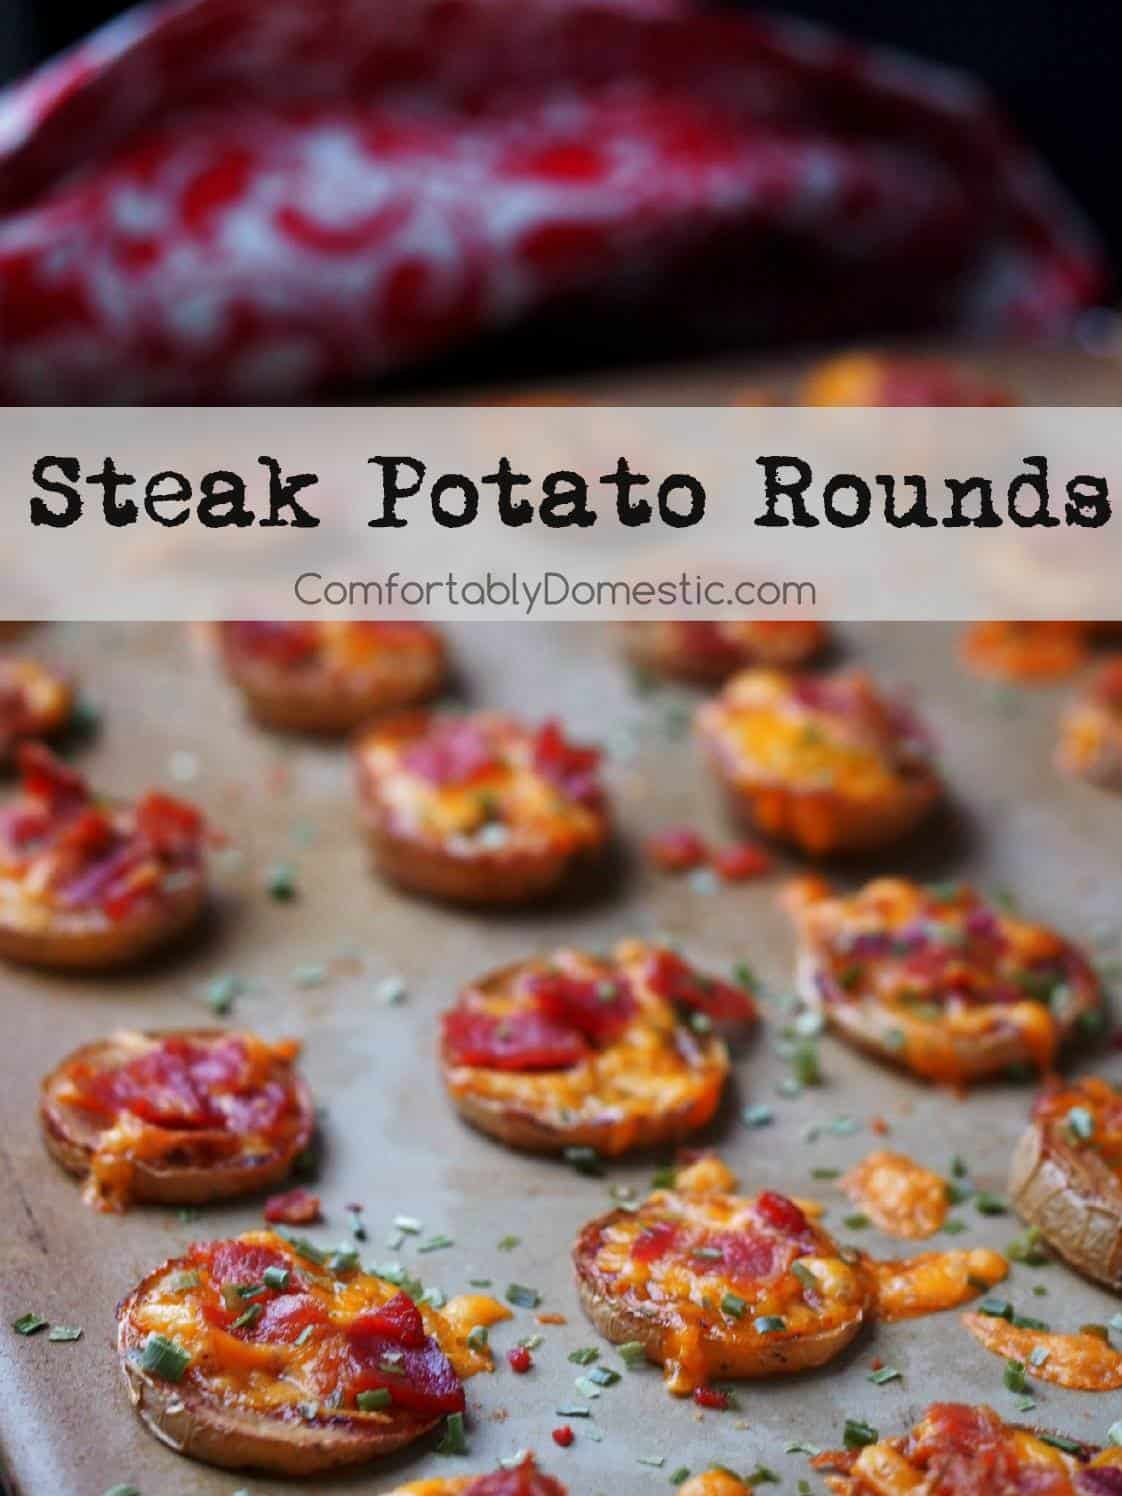 A baking sheet lined with Steak Potato Rounds is shown with text